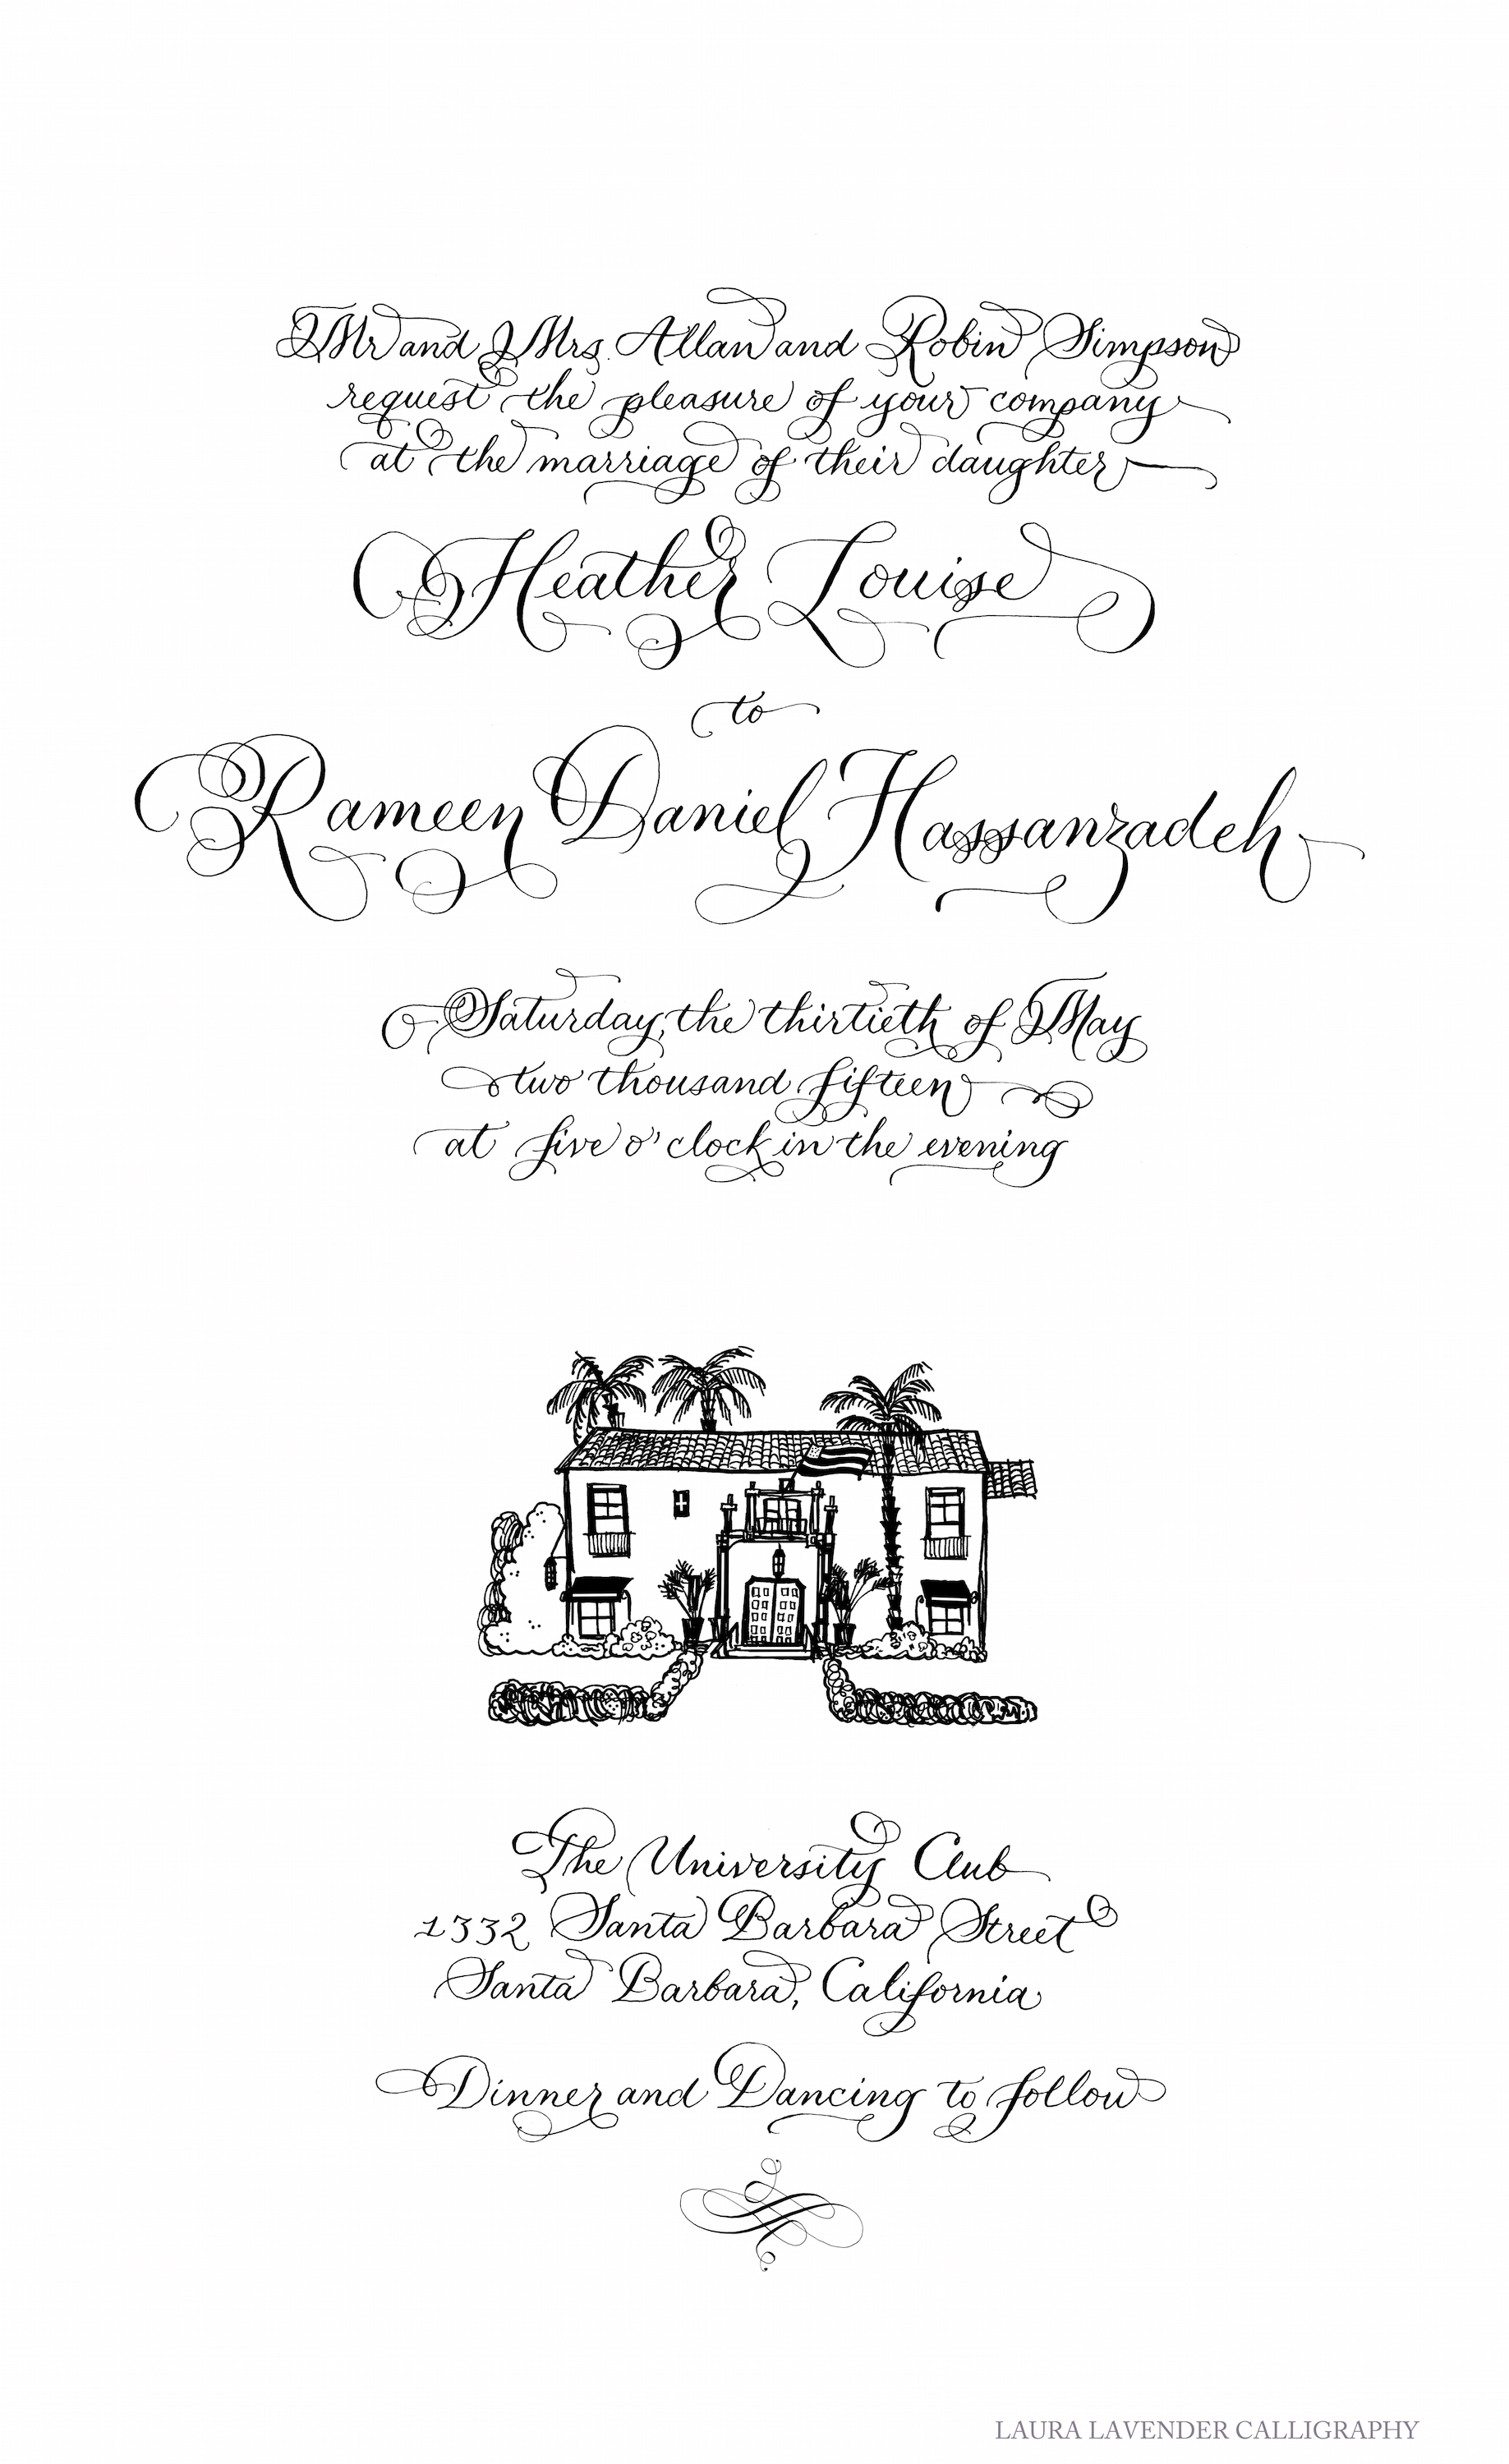 laura lavender calligraphy hand lettering wedding invitation design